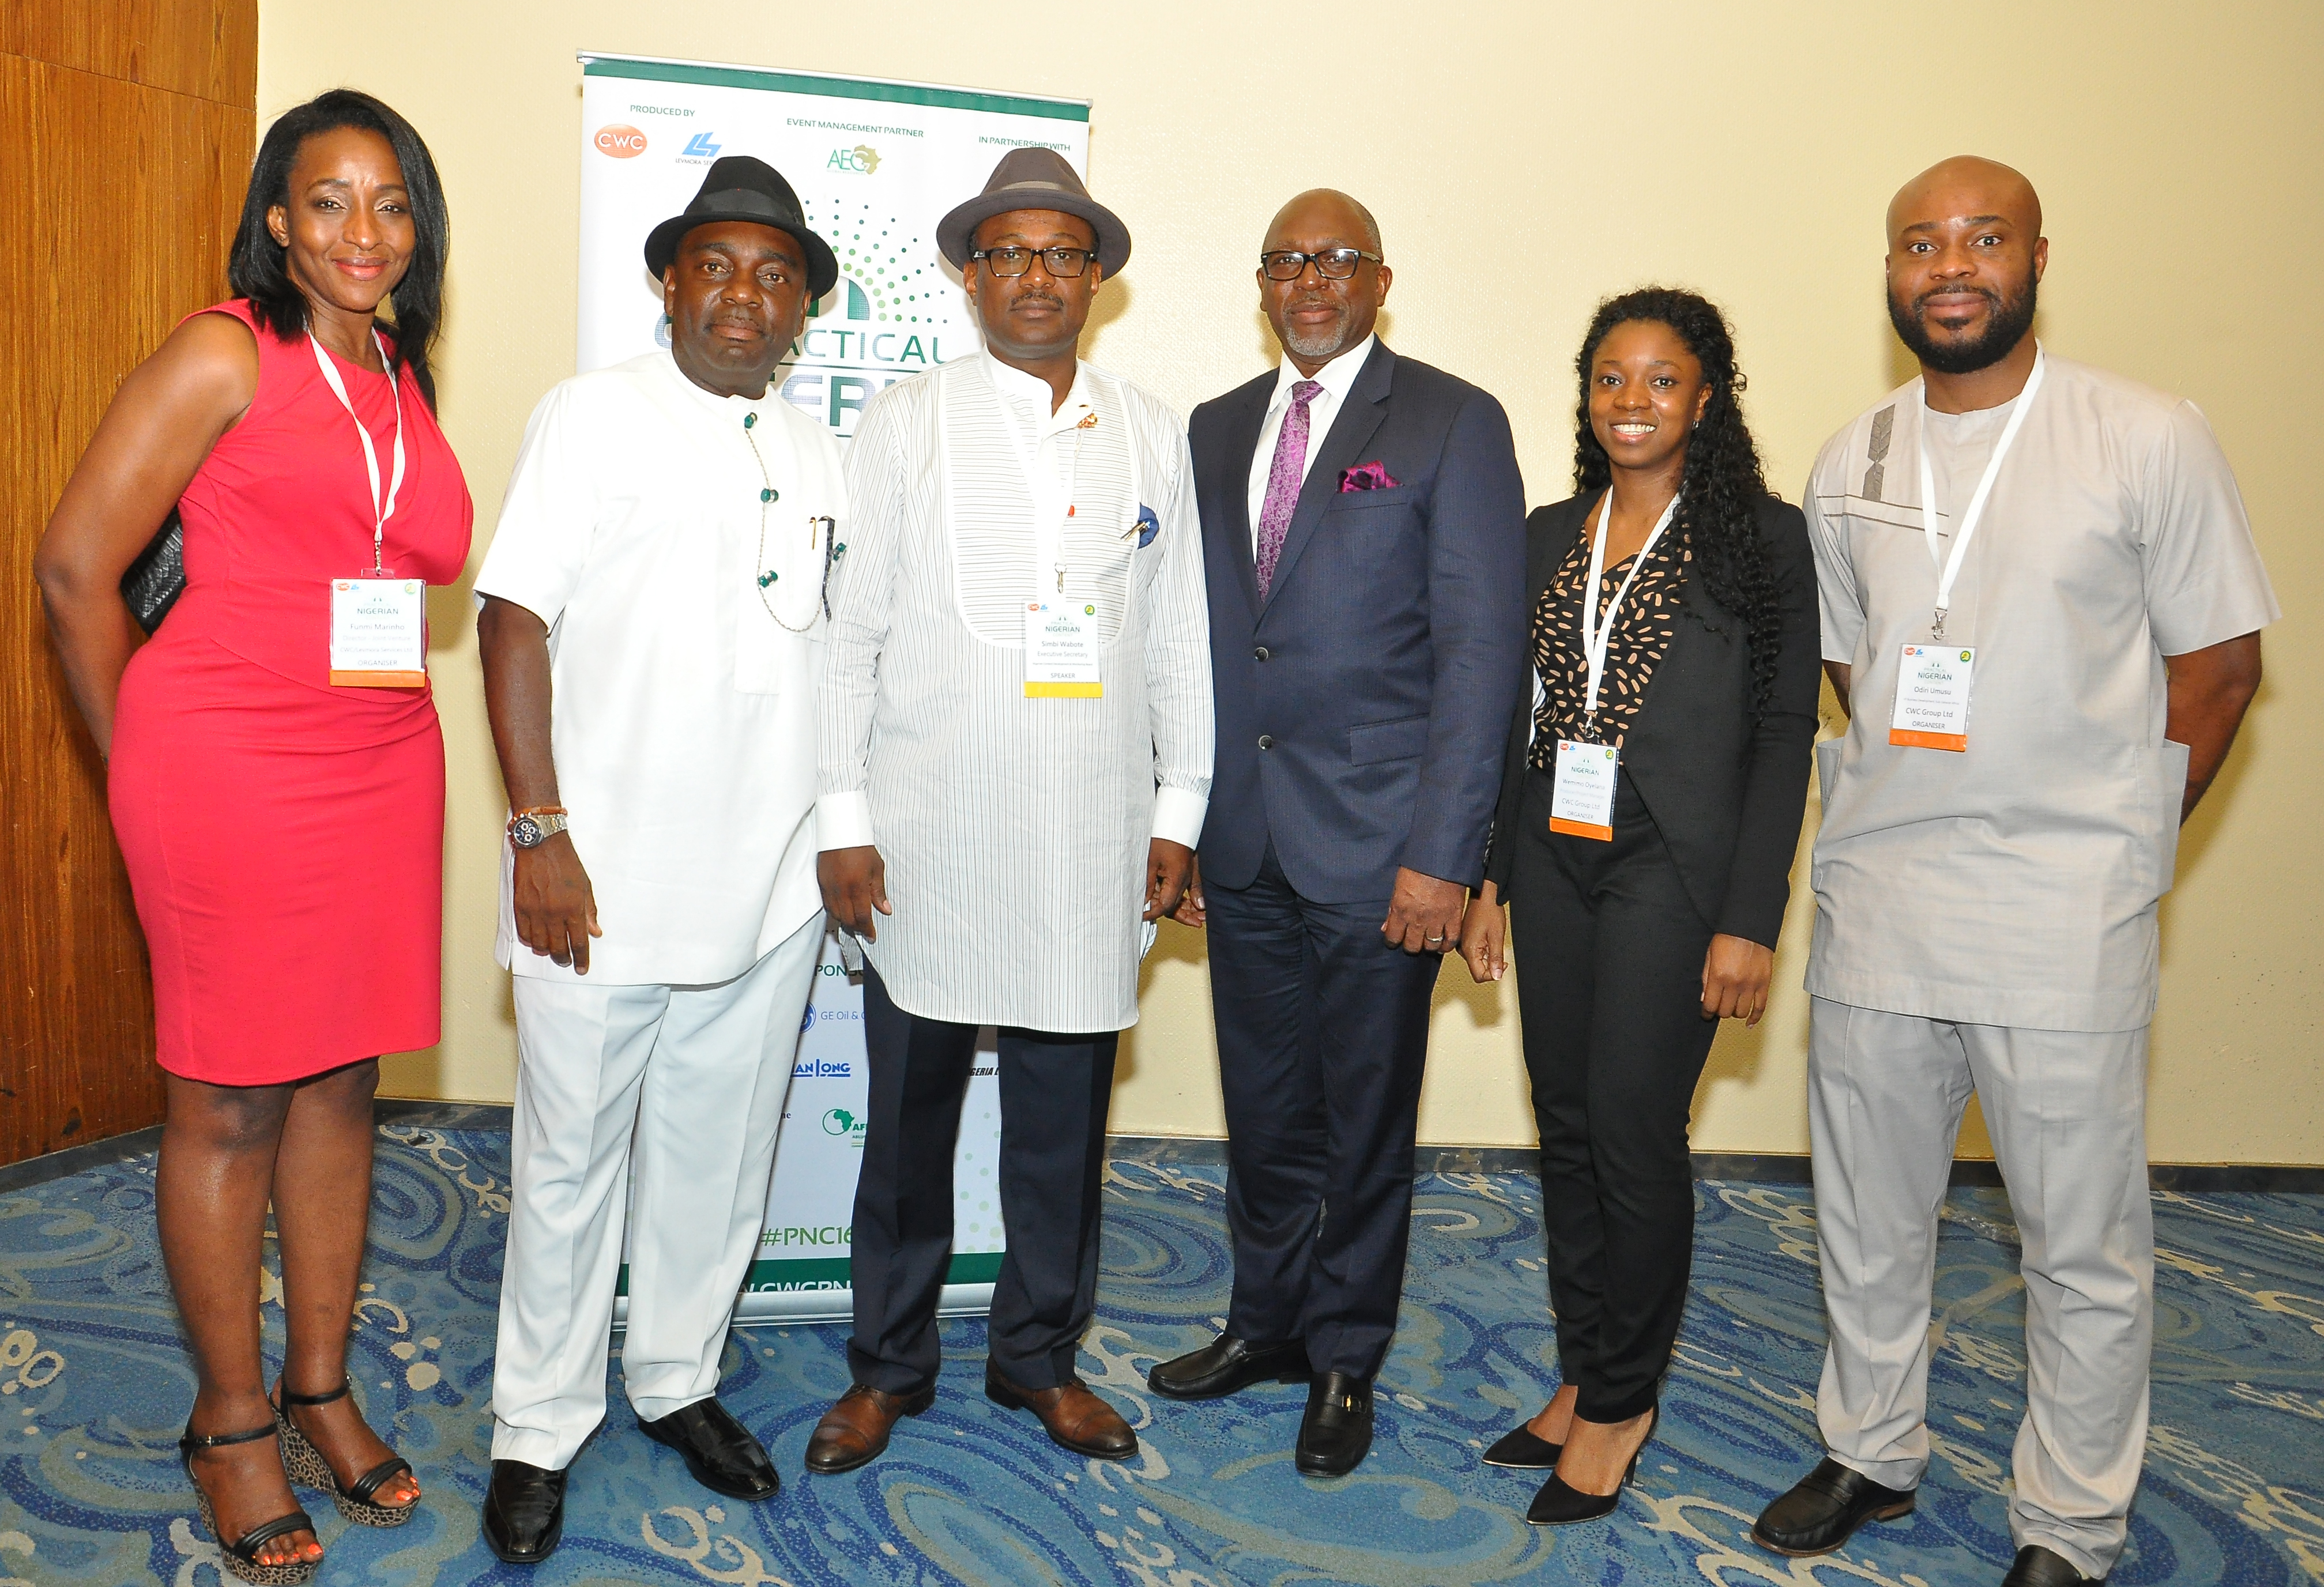 DSC 7445.JPG - Nigerian Content Development & Monitoring Board sign MOU with CWC Group on PNC Forum